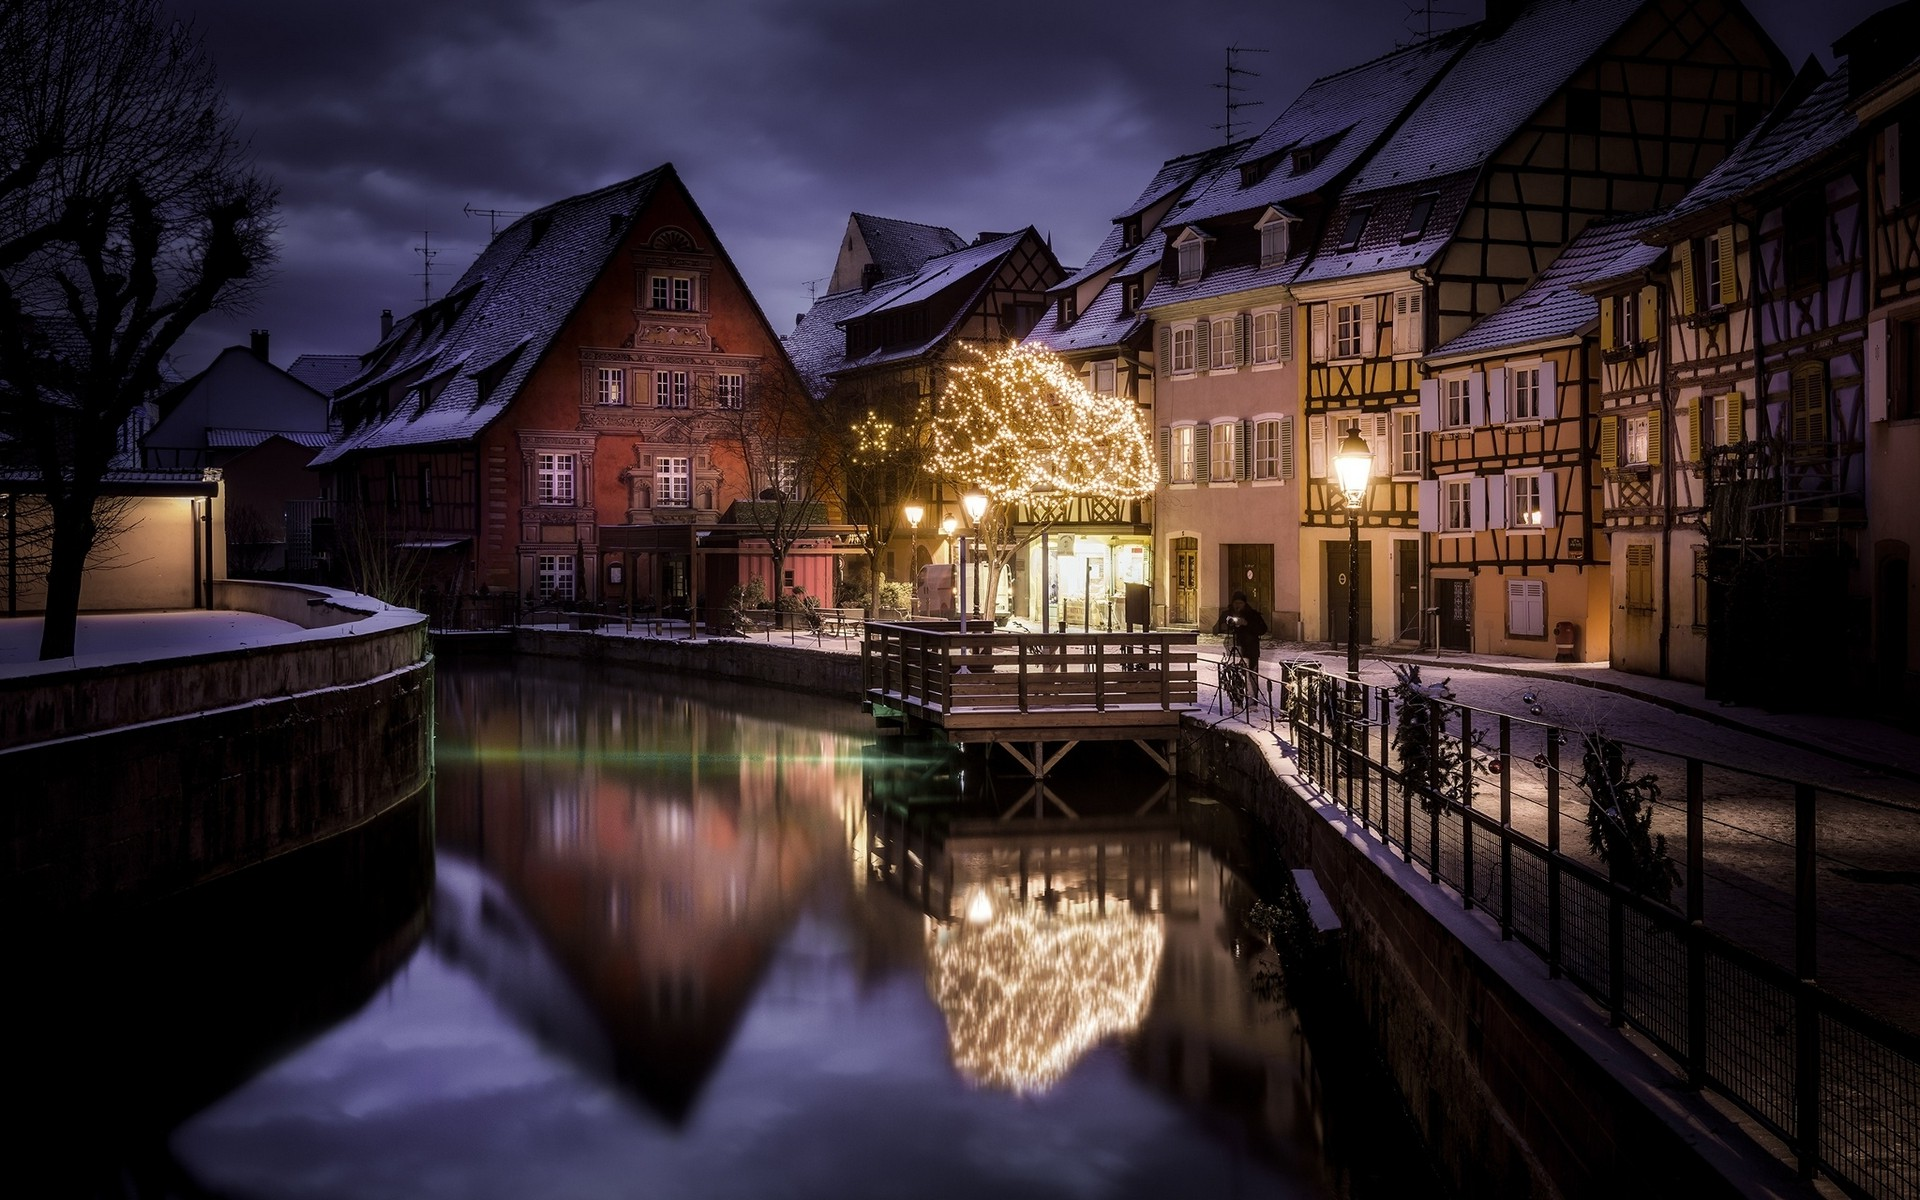 Happy New Year Movie Hd Wallpaper Download Landscape Nature City Canal House Winter Snow